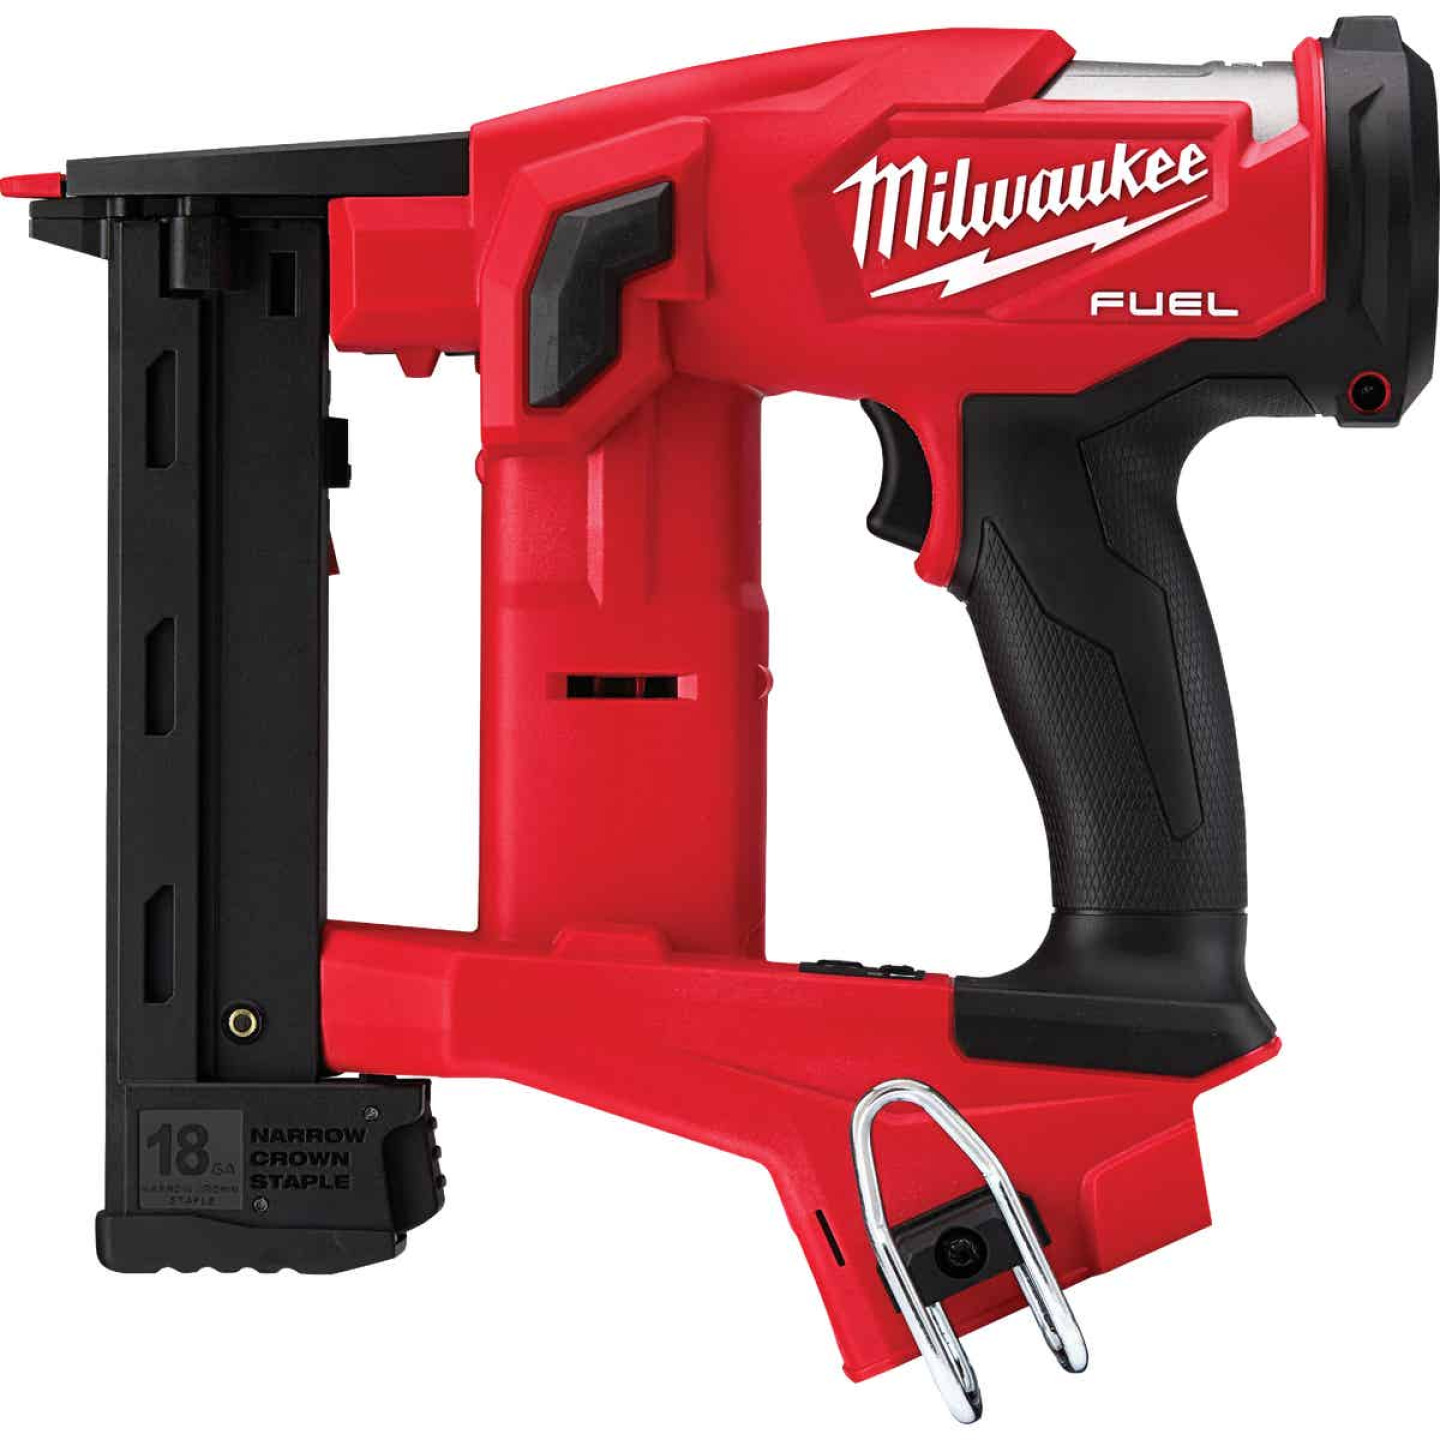 Milwaukee M18 FUEL 18 Volt Lithium-Ion 1/4 In. Narrow Crown Brushless Cordless Finish Stapler (Bare Tool) Image 1